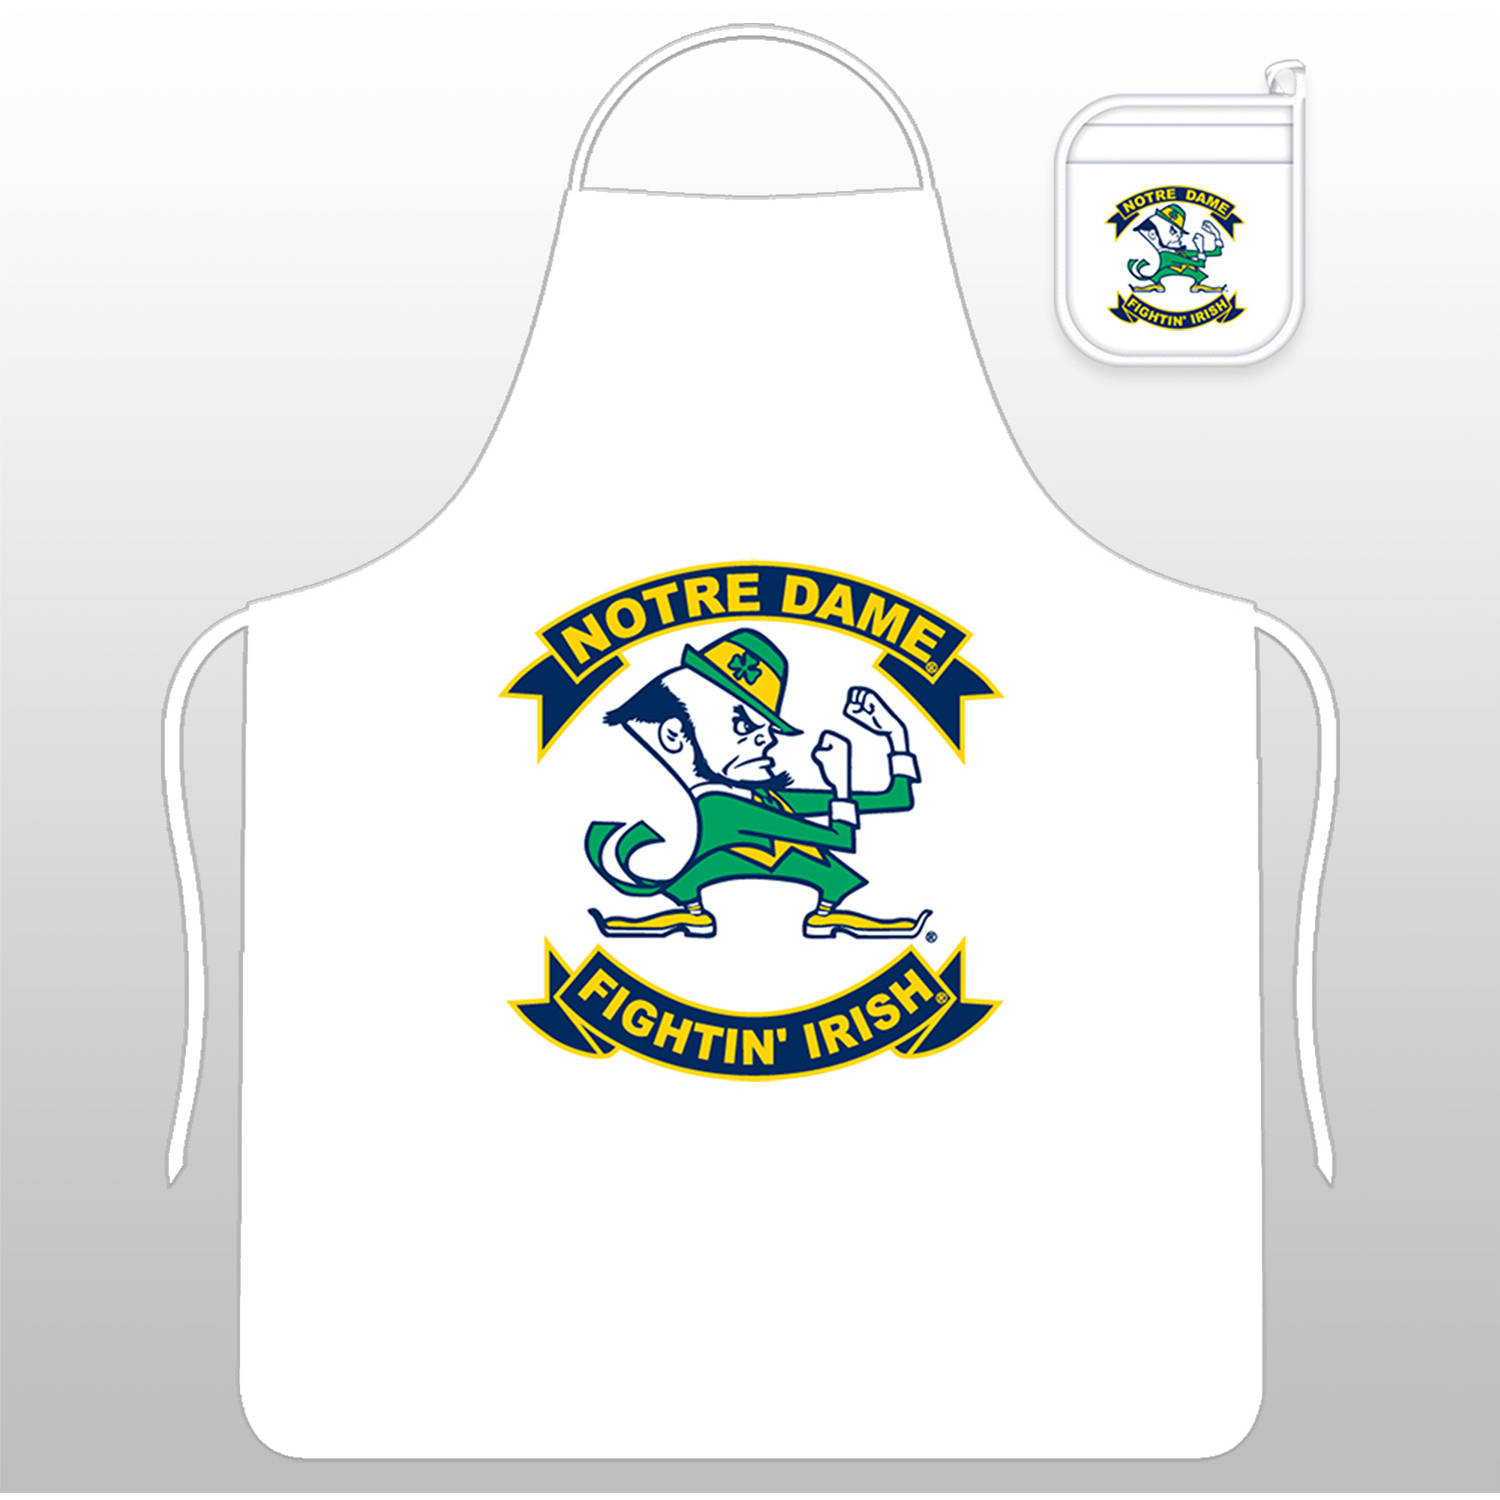 NCAA Notre Dame Tail Gate Kit with Apron and Mitt by Sports Coverage, Inc.